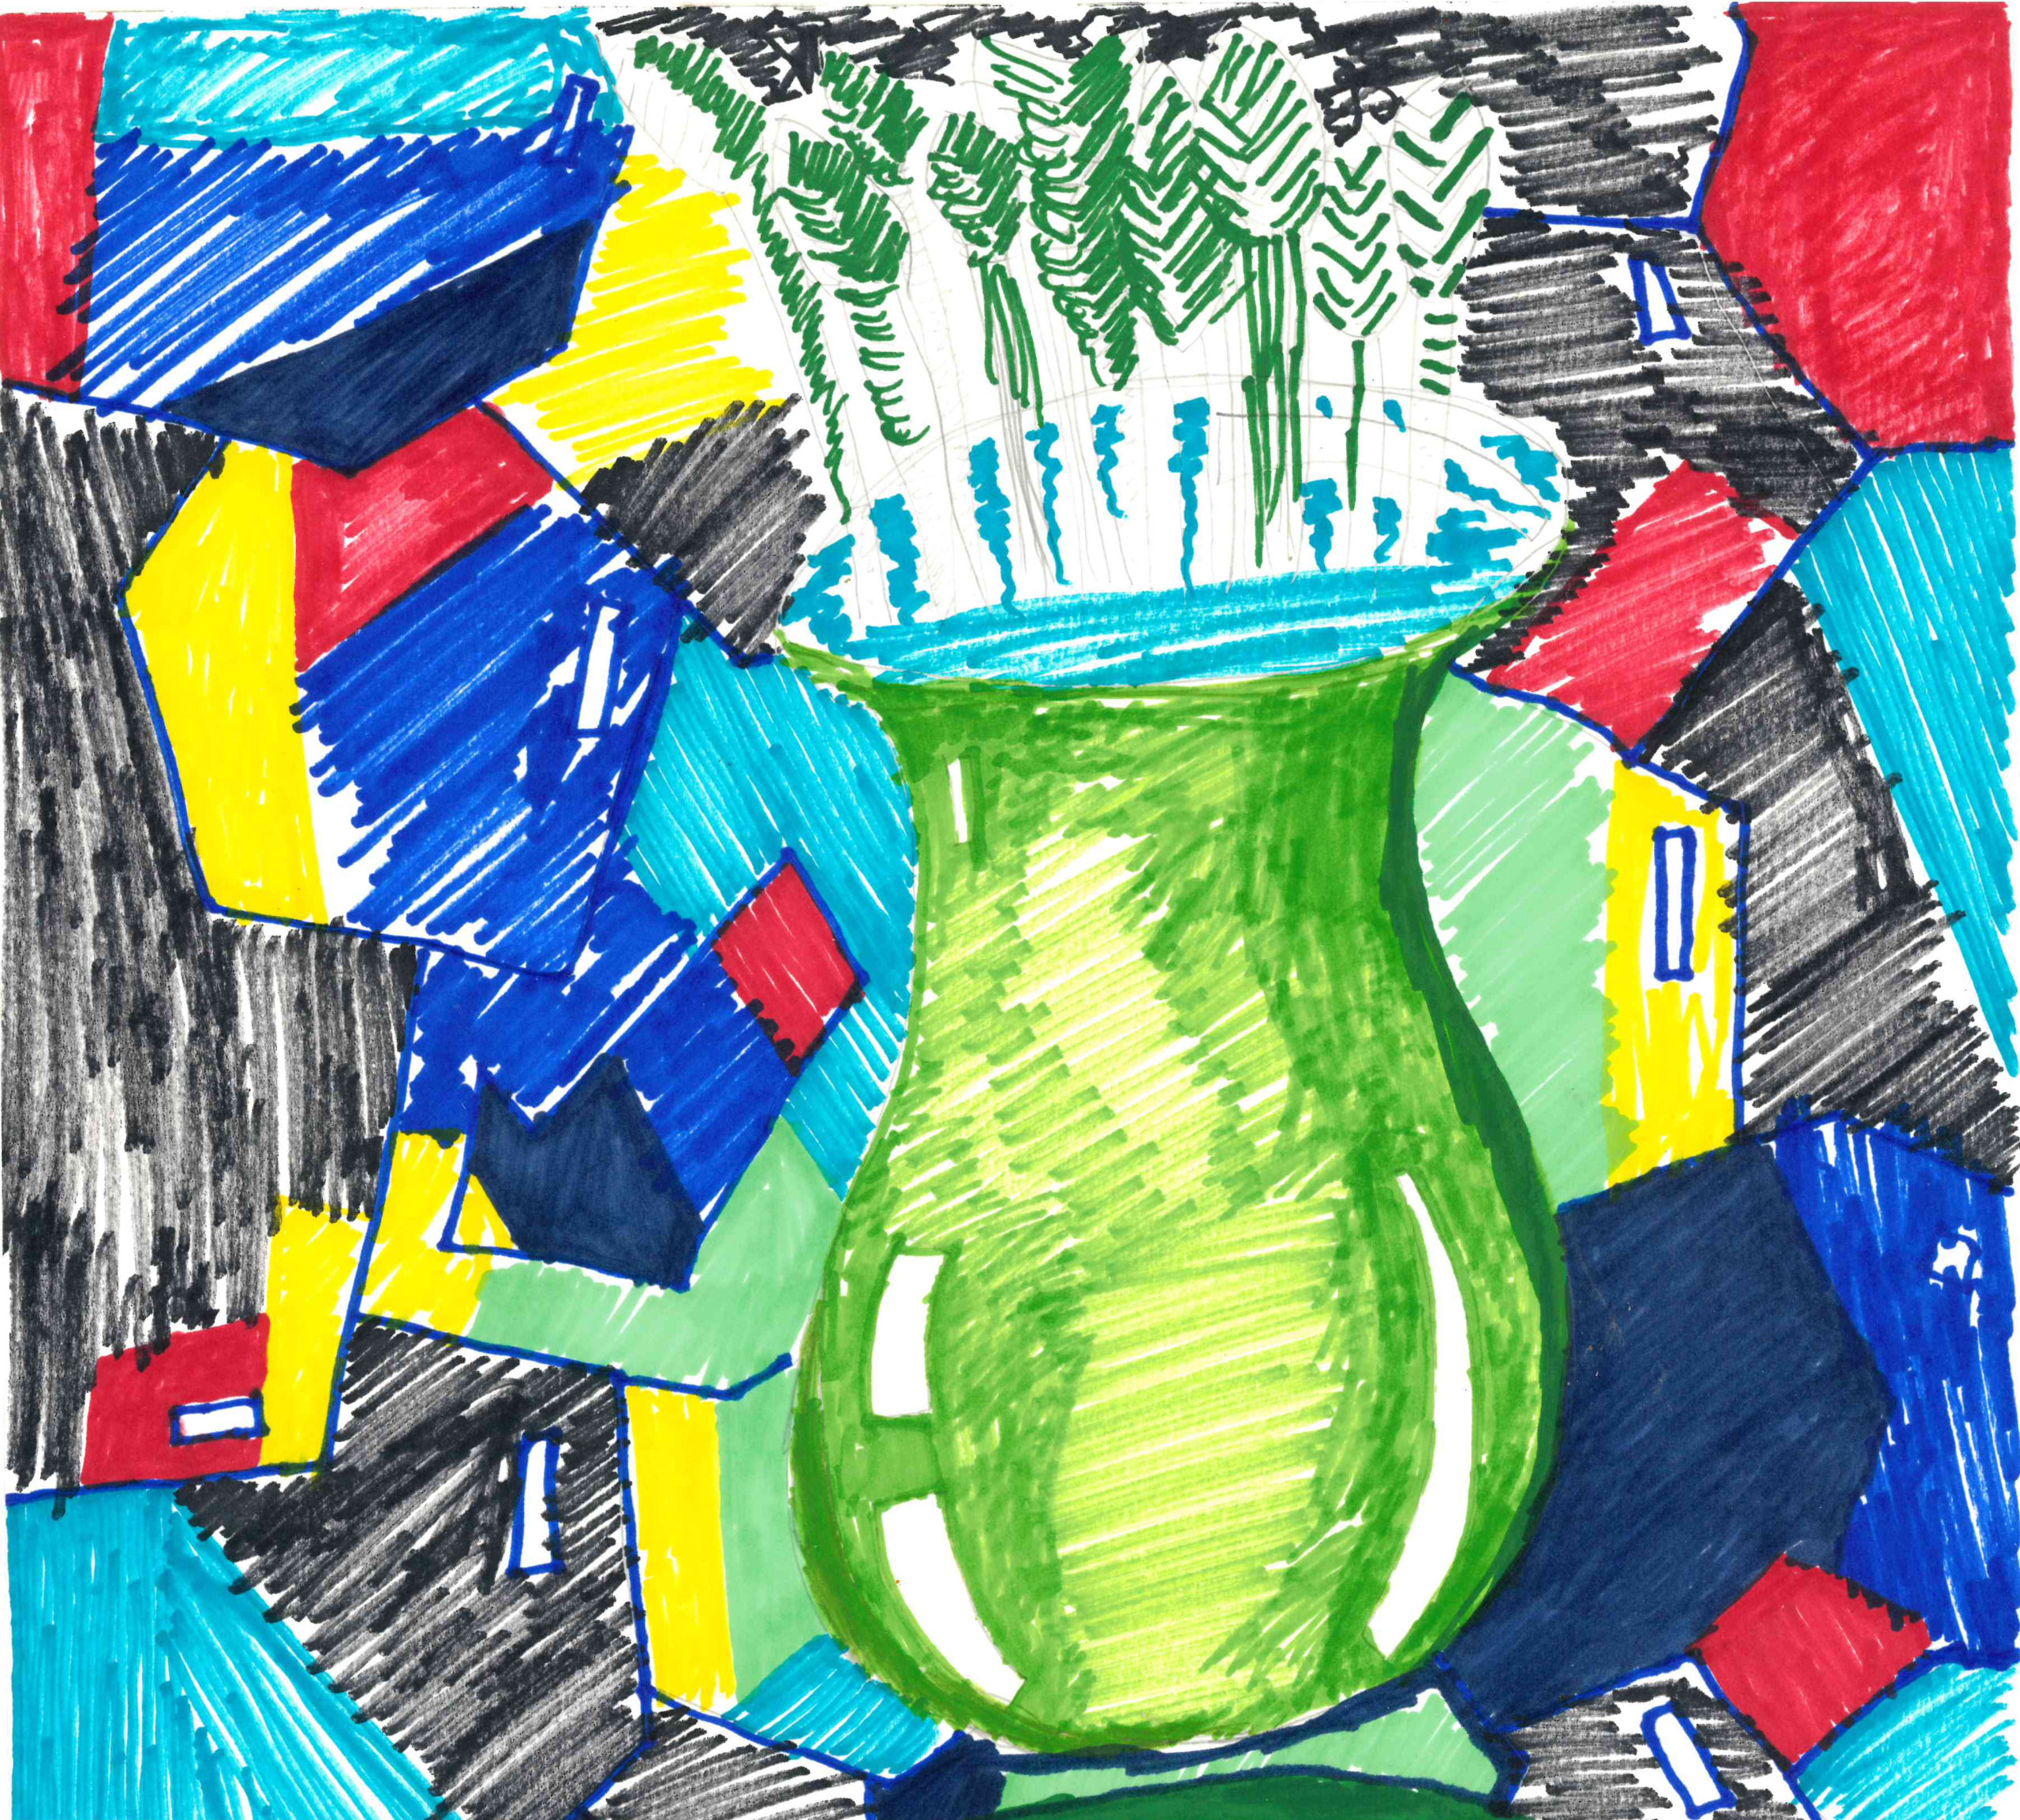 Marker drawing of a vase by Jeffrey Wales